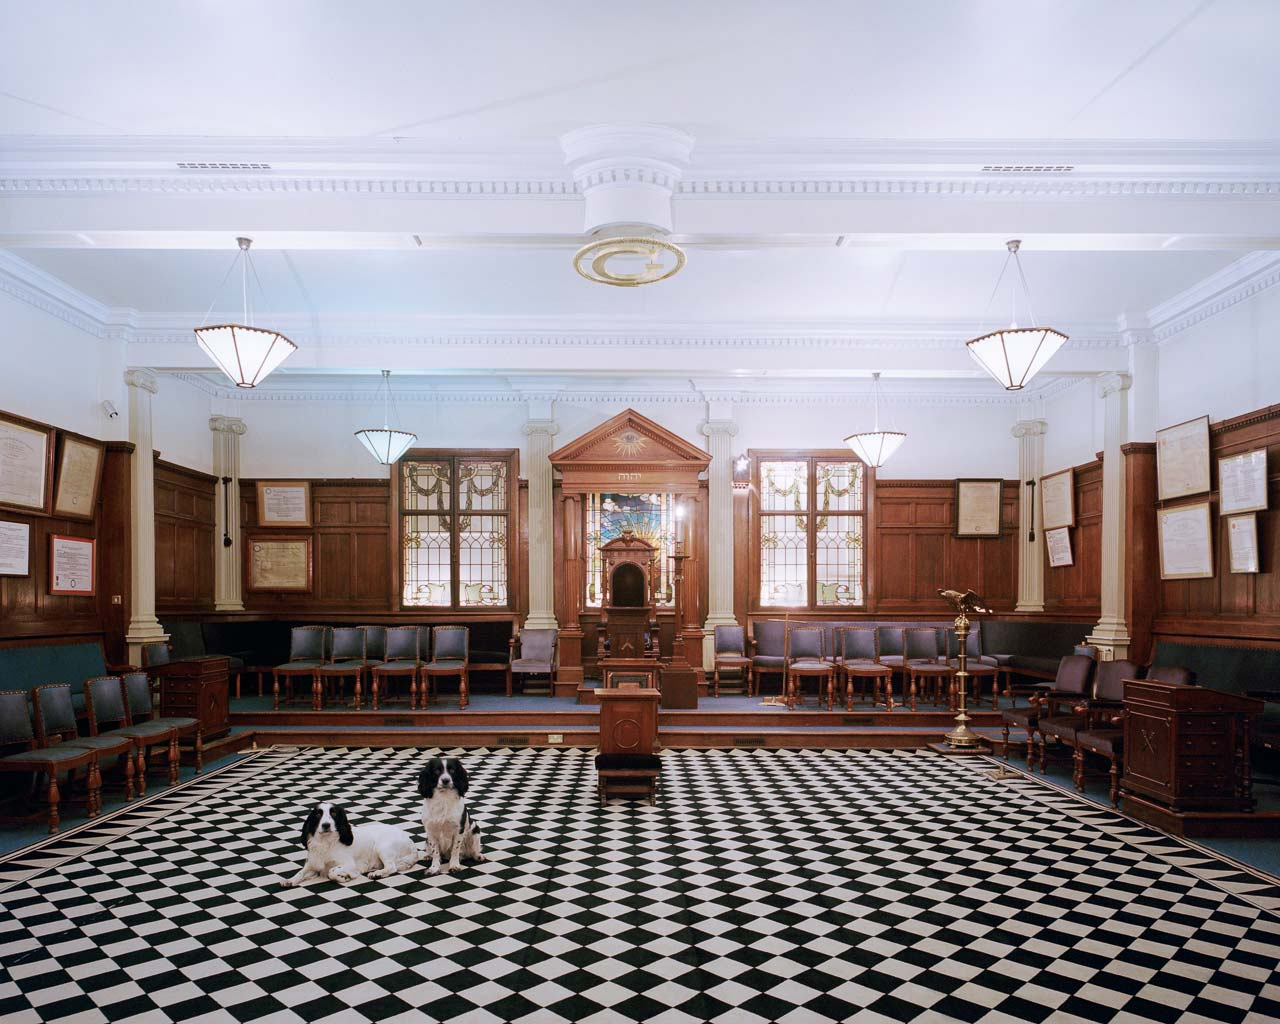 Tempel der »Provincial Grand Lodge of Yorkshire«, Bradford, England, 2015. Foto: Juliane Herrmann